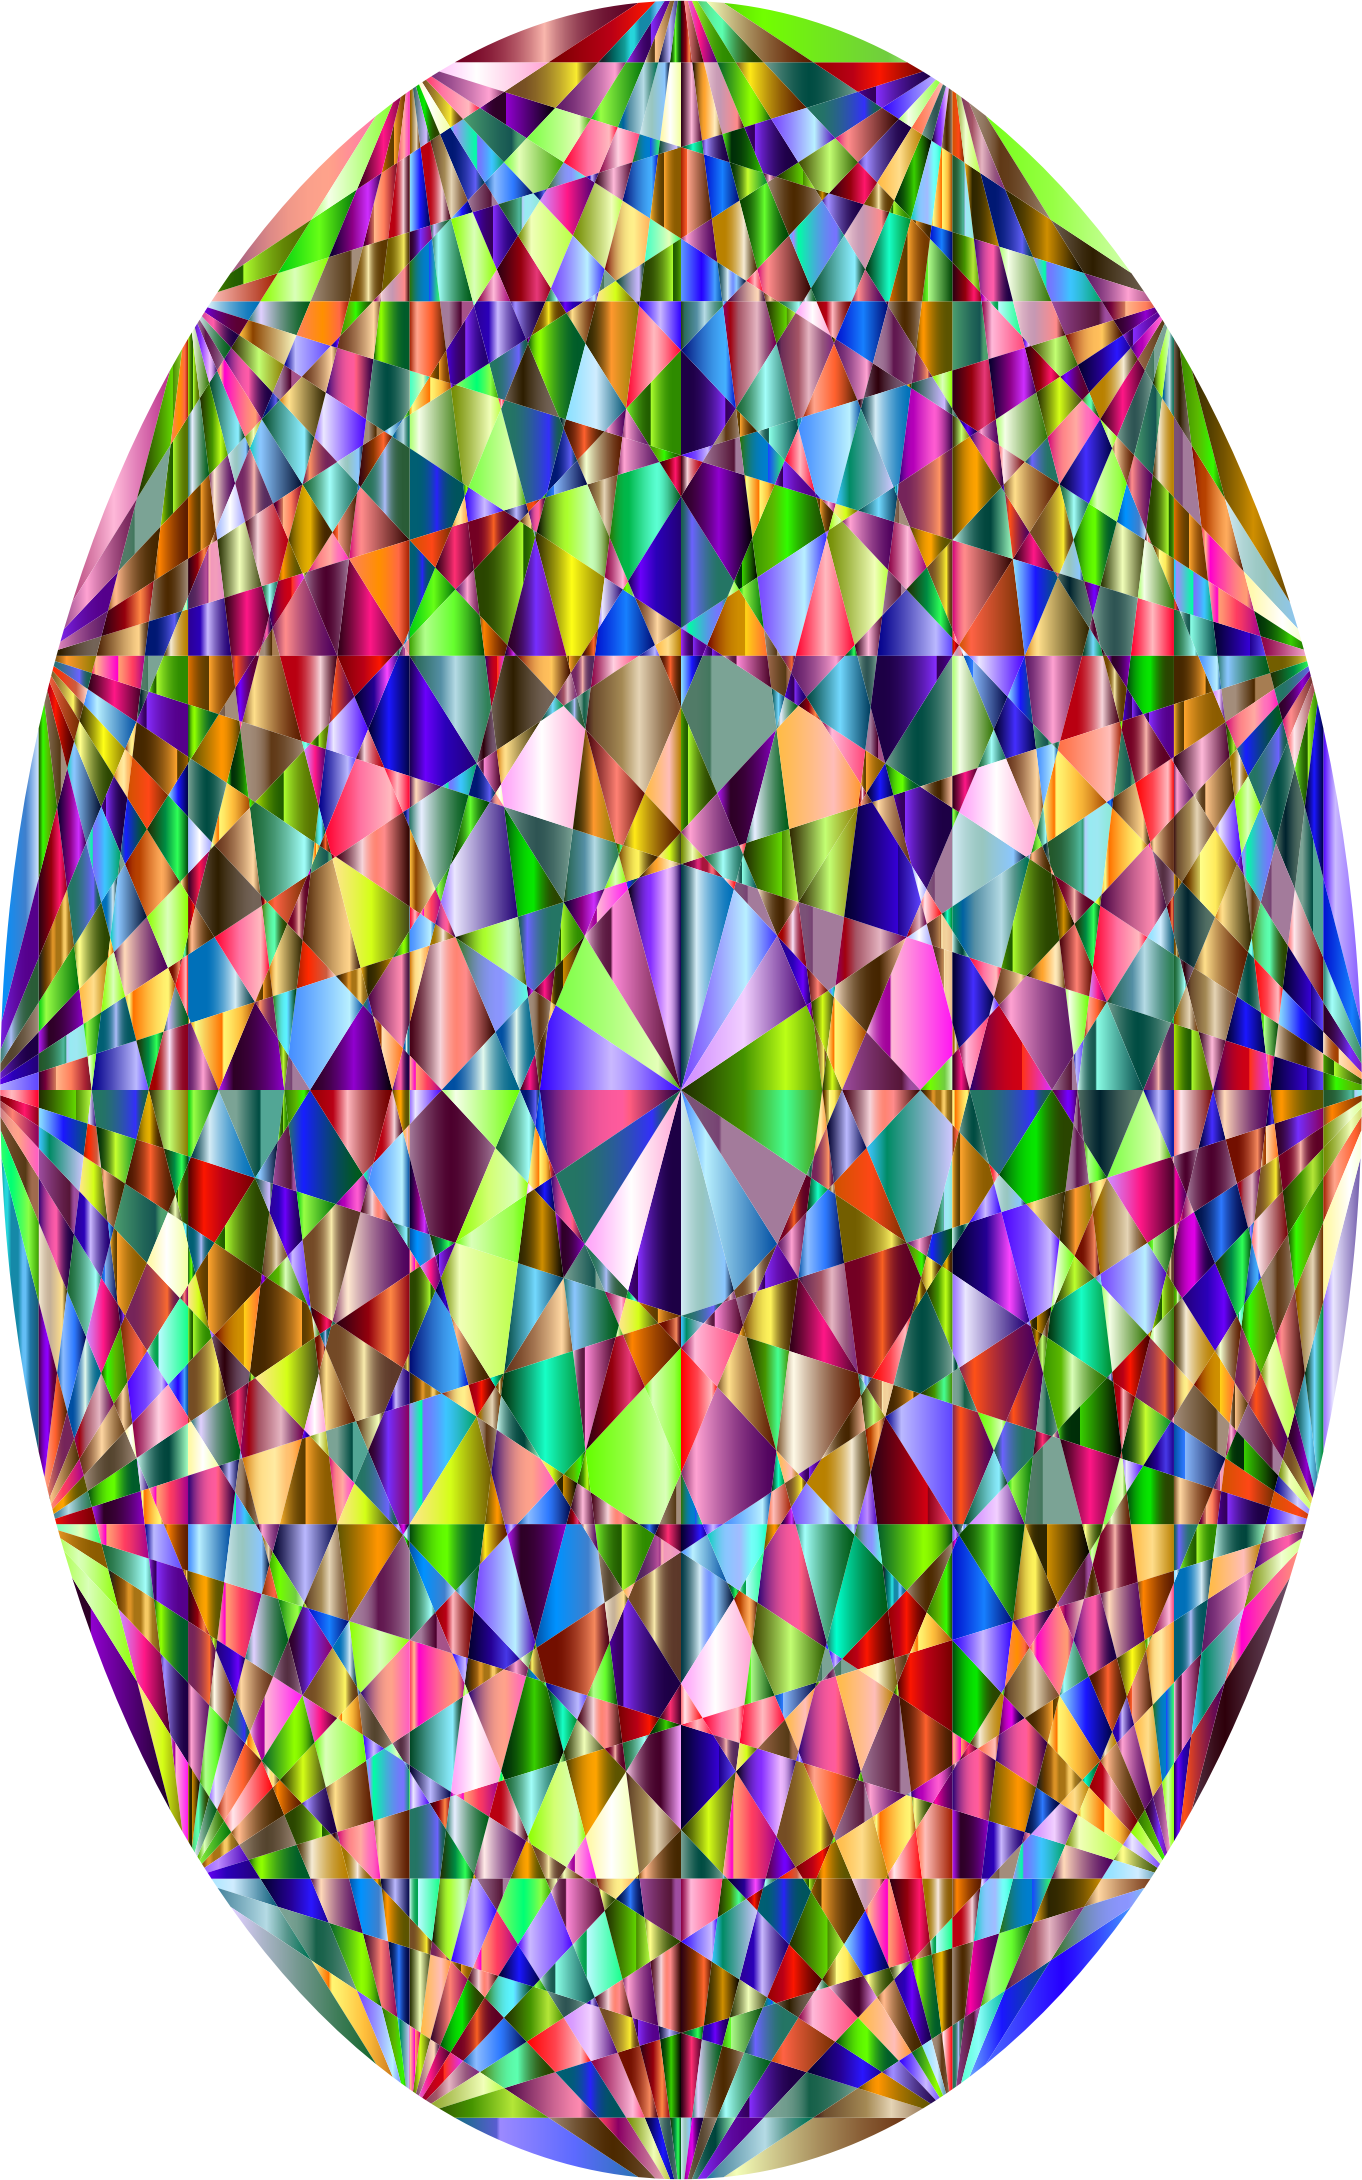 Prismatic Easter Egg 6 by GDJ